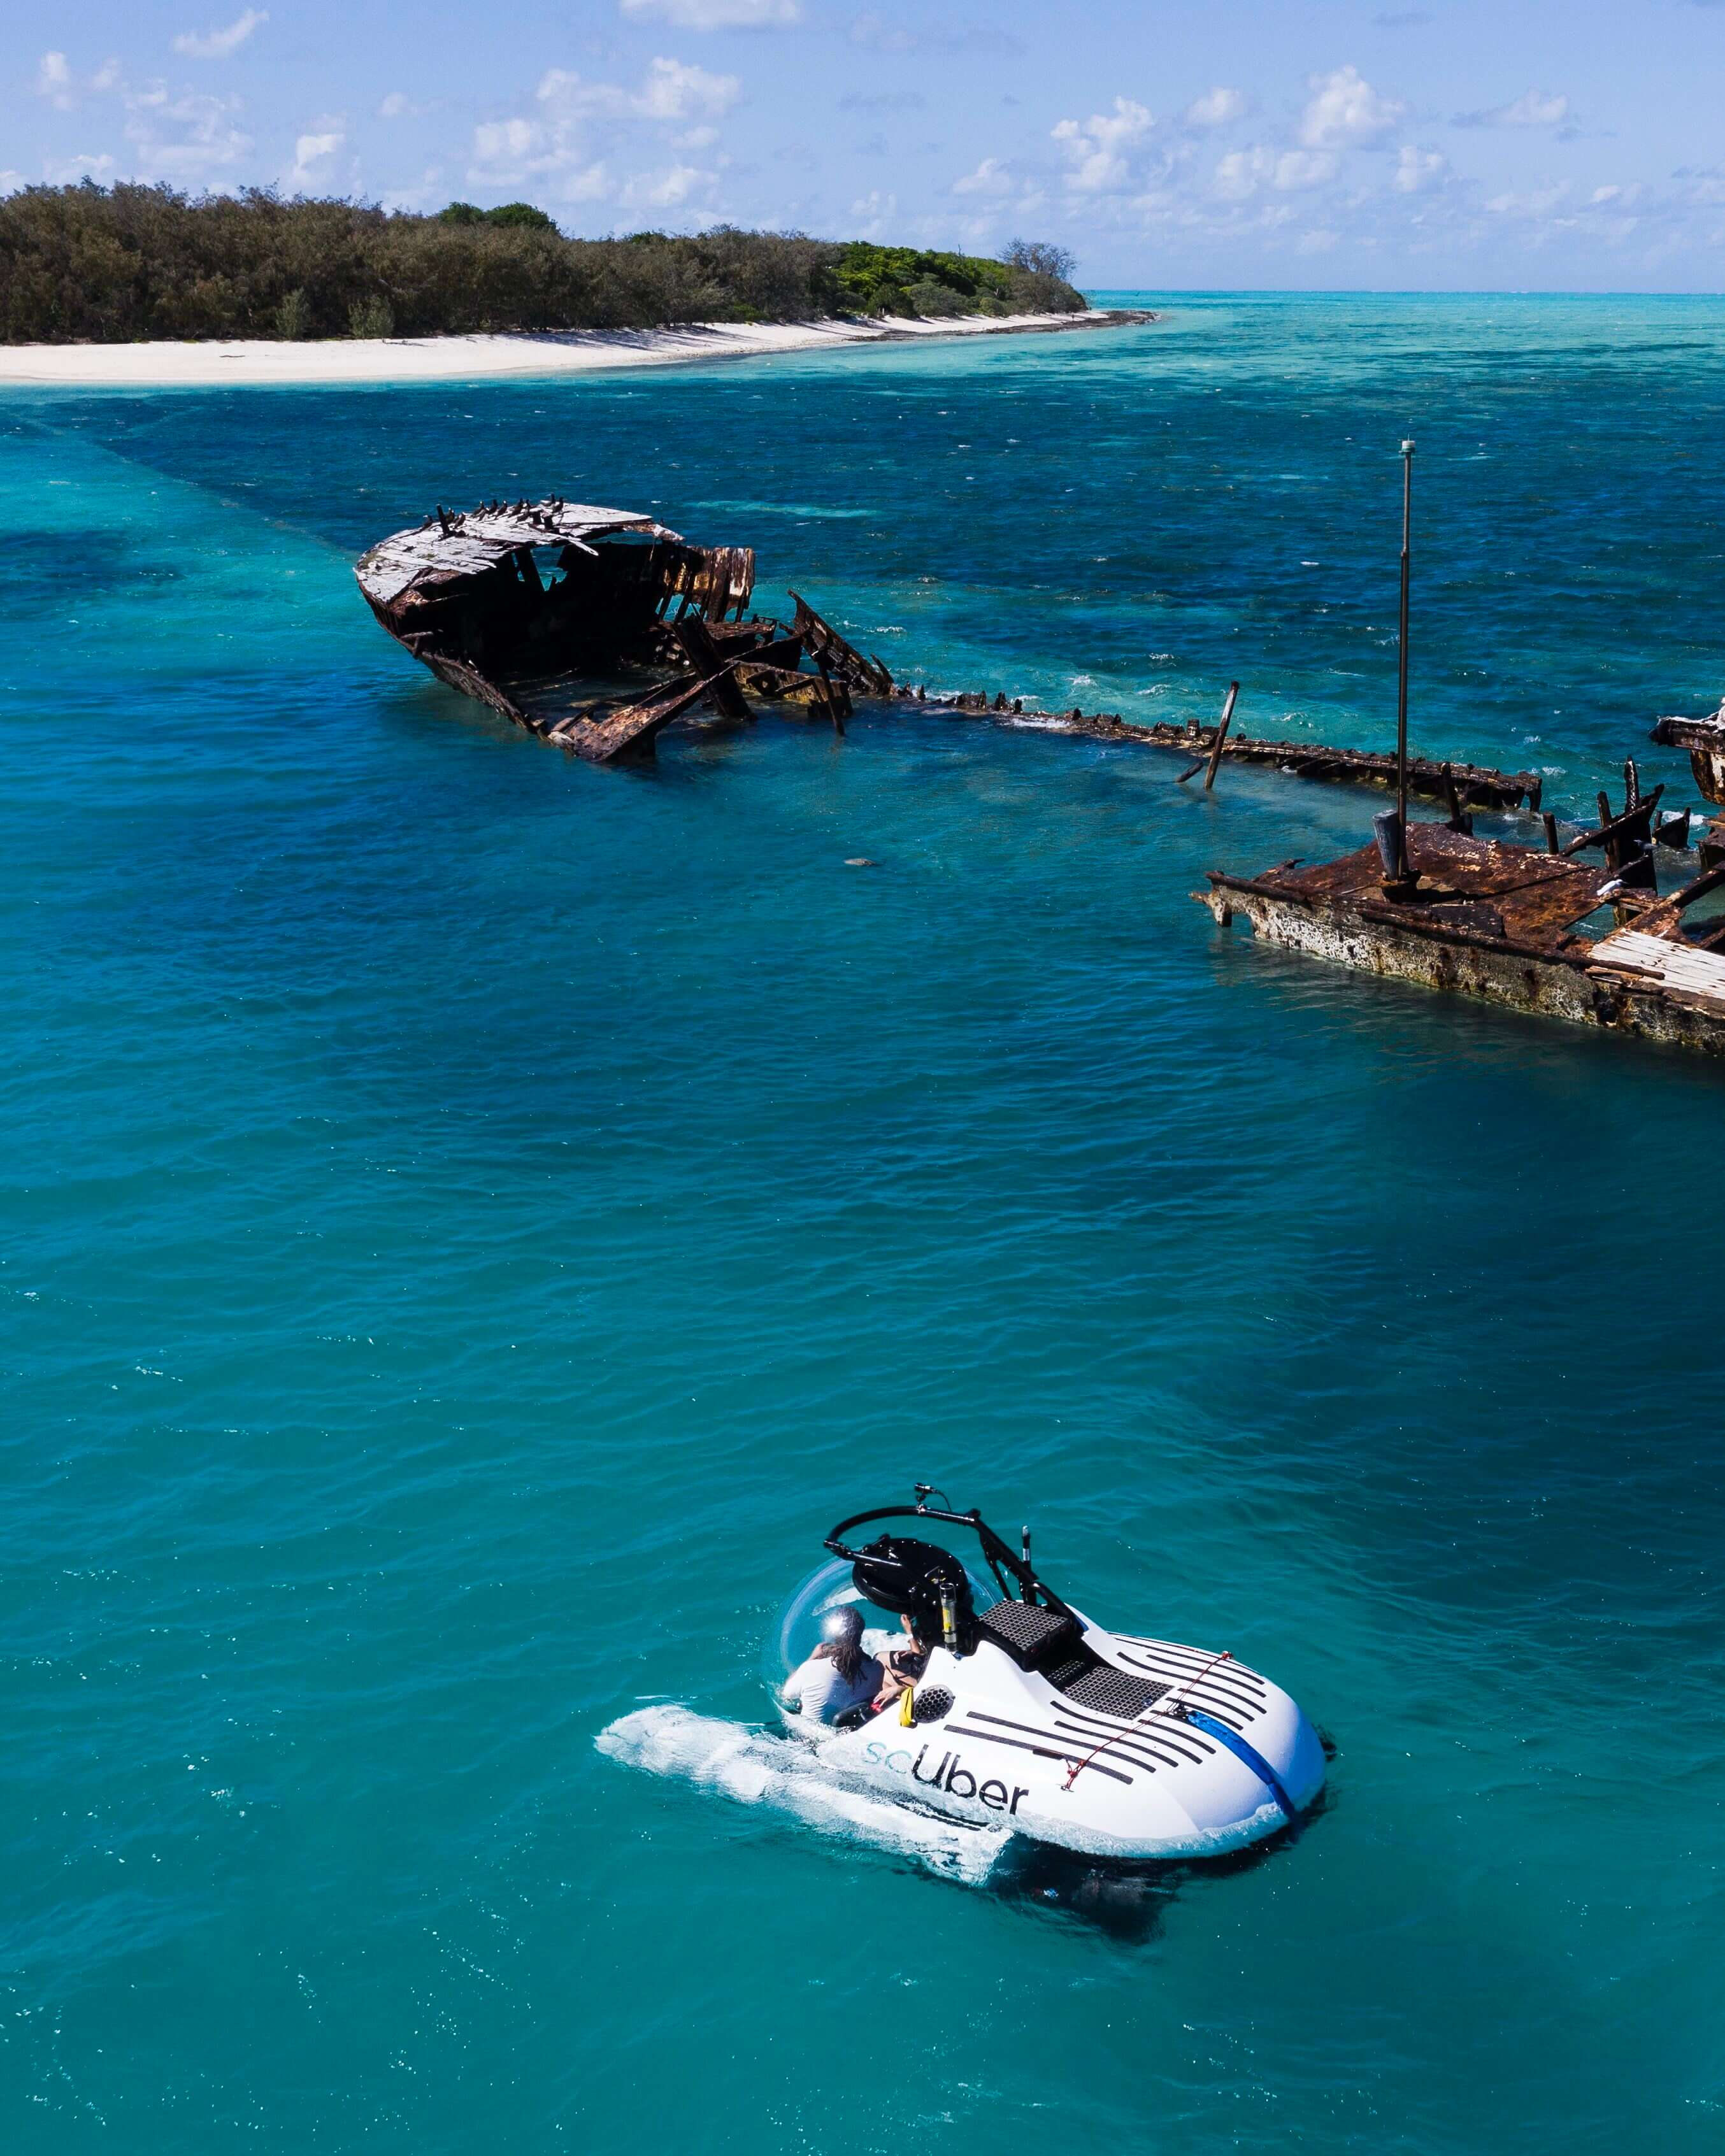 Rideshare an Uber Submarine: Soon available at Great Barrier Reef